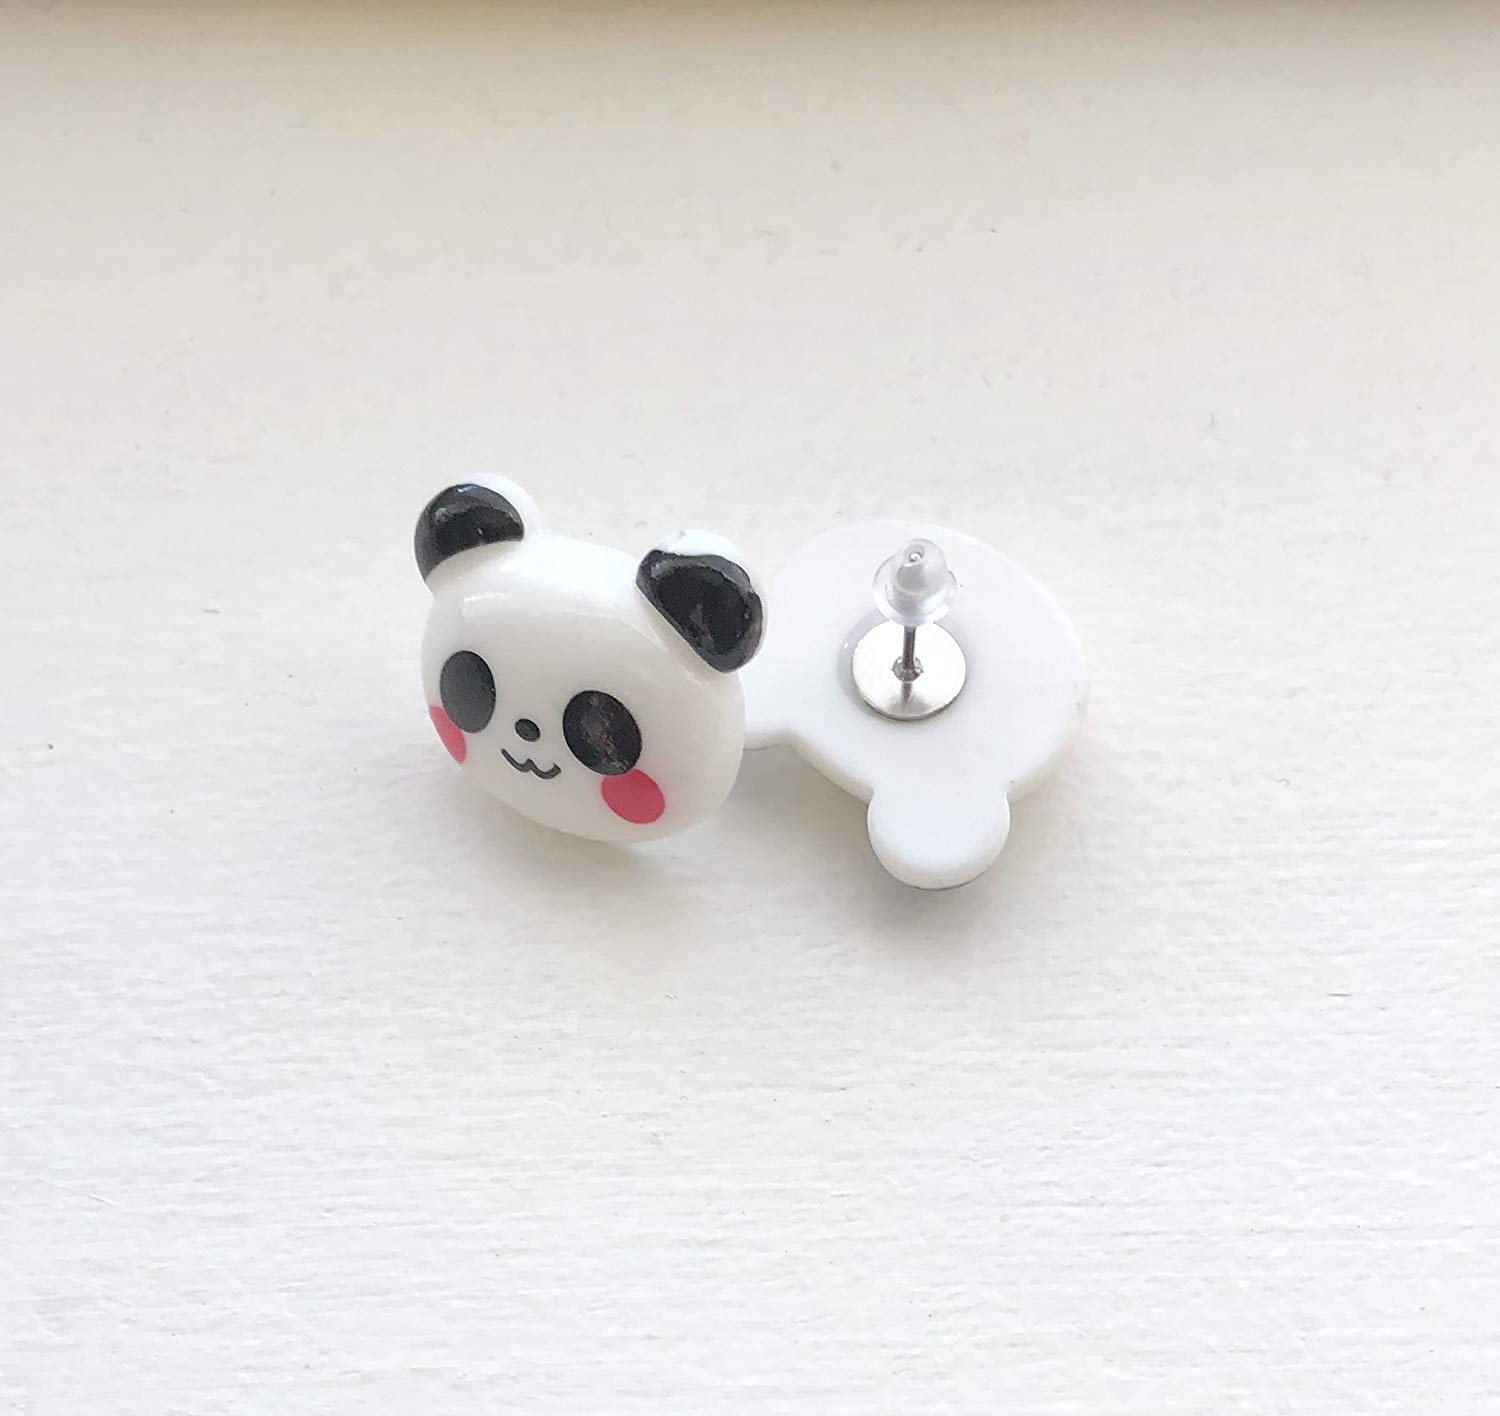 Get Quotations Kawaii Panda Bear Earrings Black And White Gift For Her